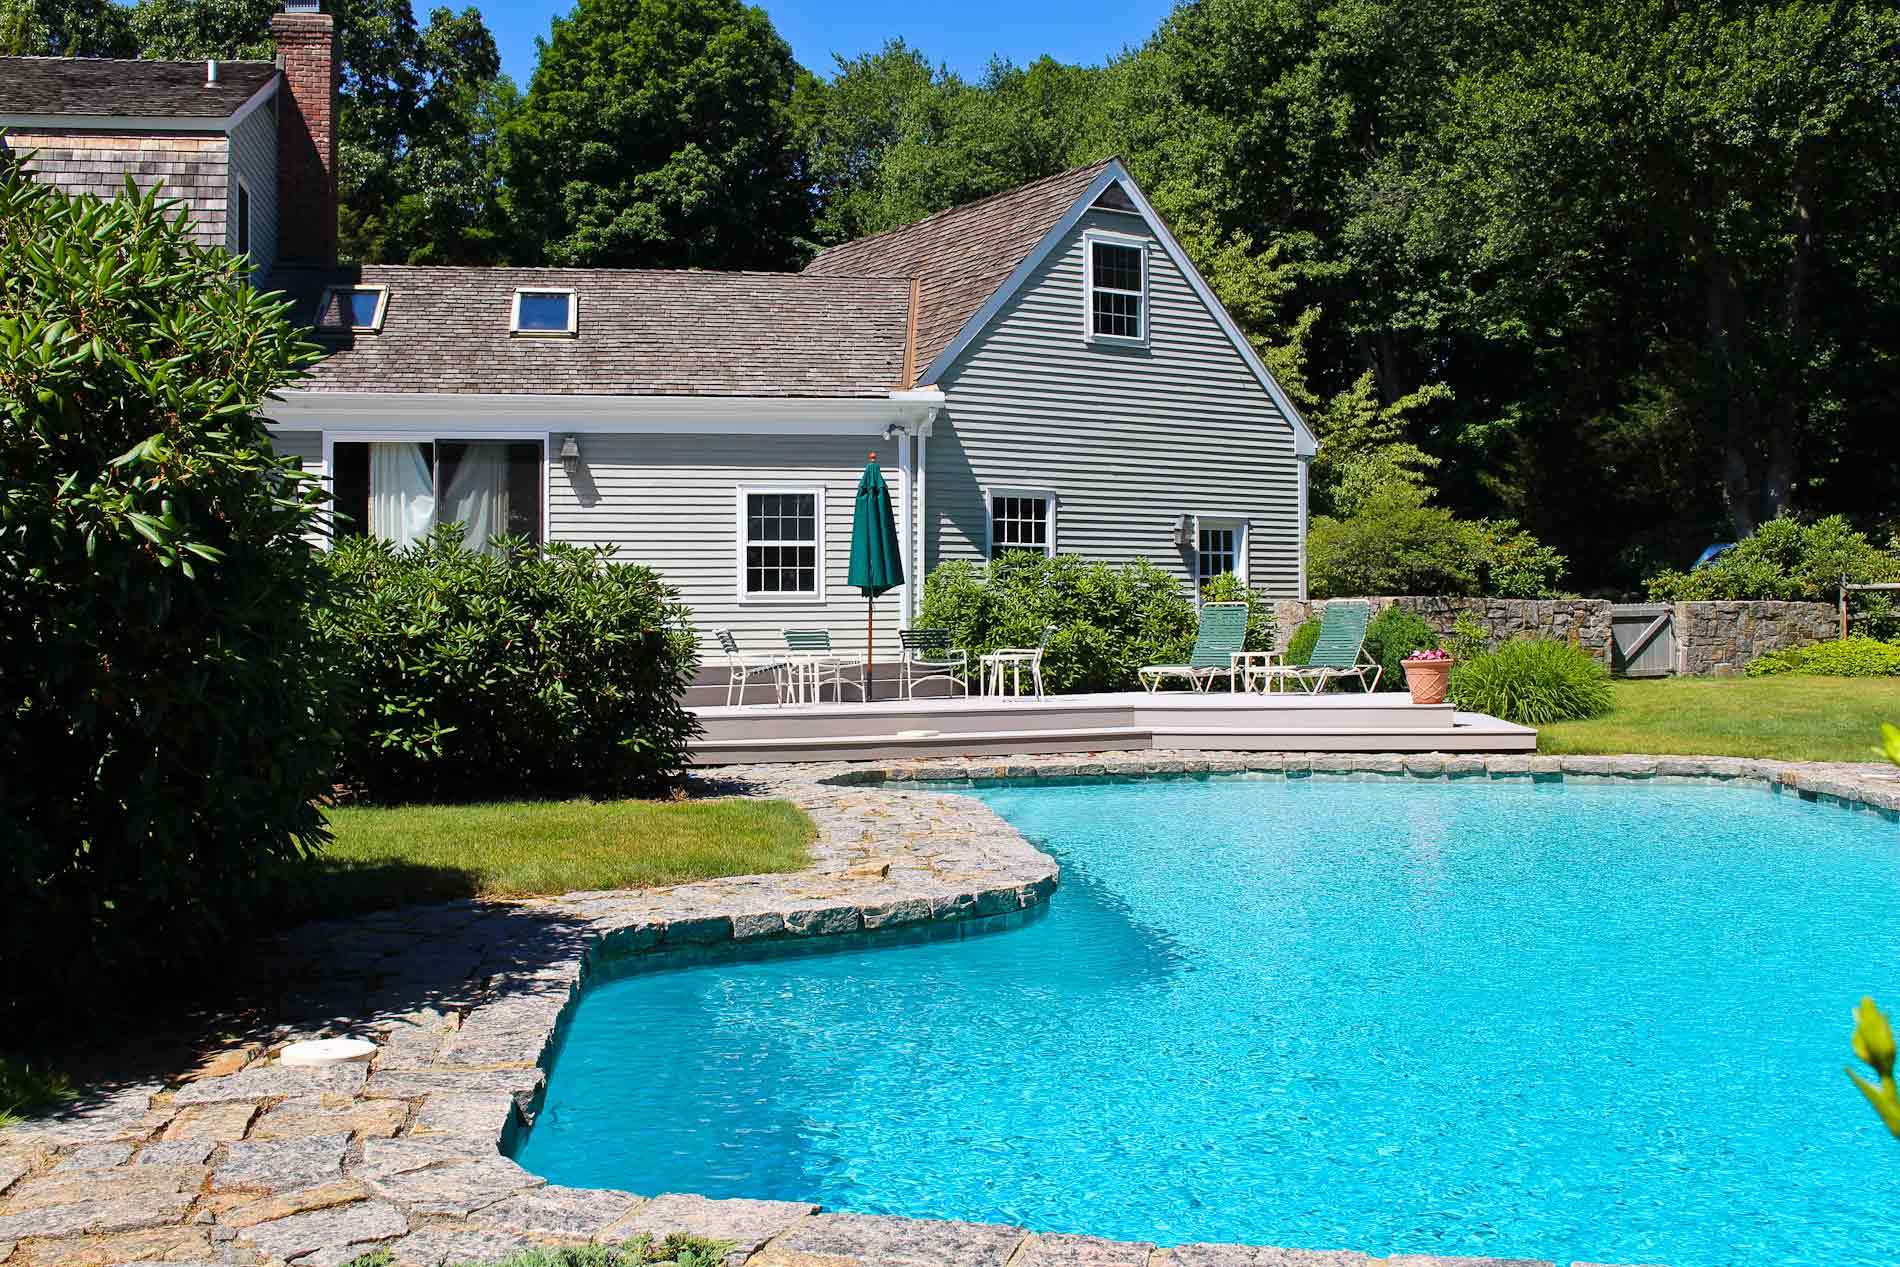 Easton real estate find houses homes for sale in autos post for Buy swimming pool